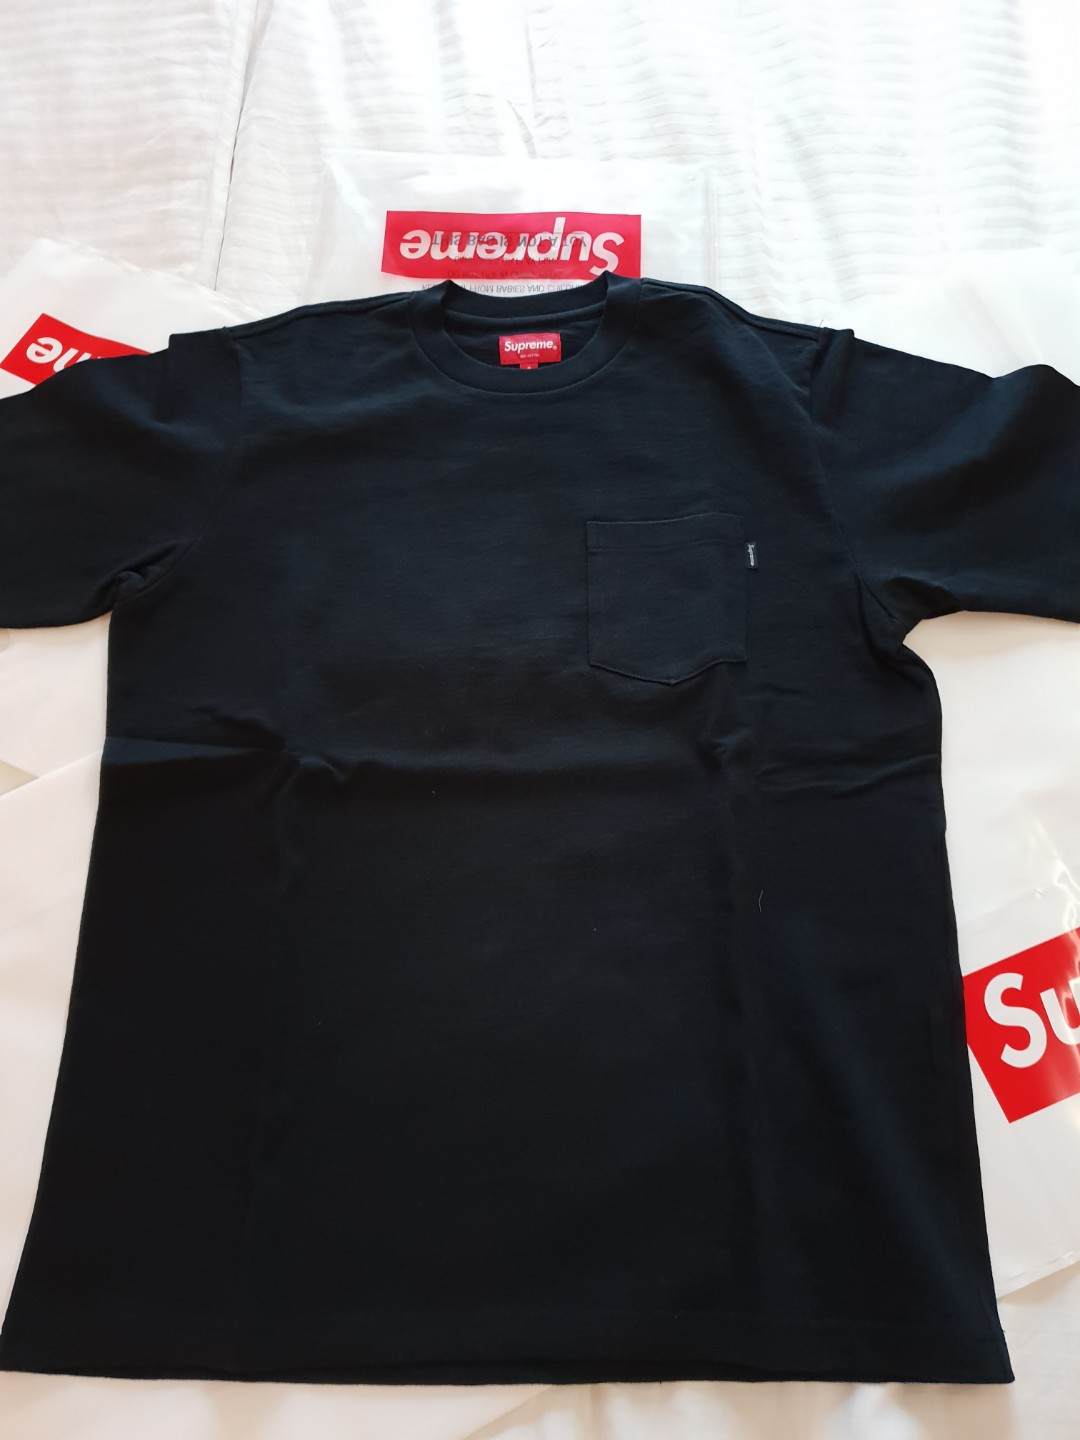 f4a31318 Supreme Pocket Tee (S), Men's Fashion, Clothes, Tops on Carousell